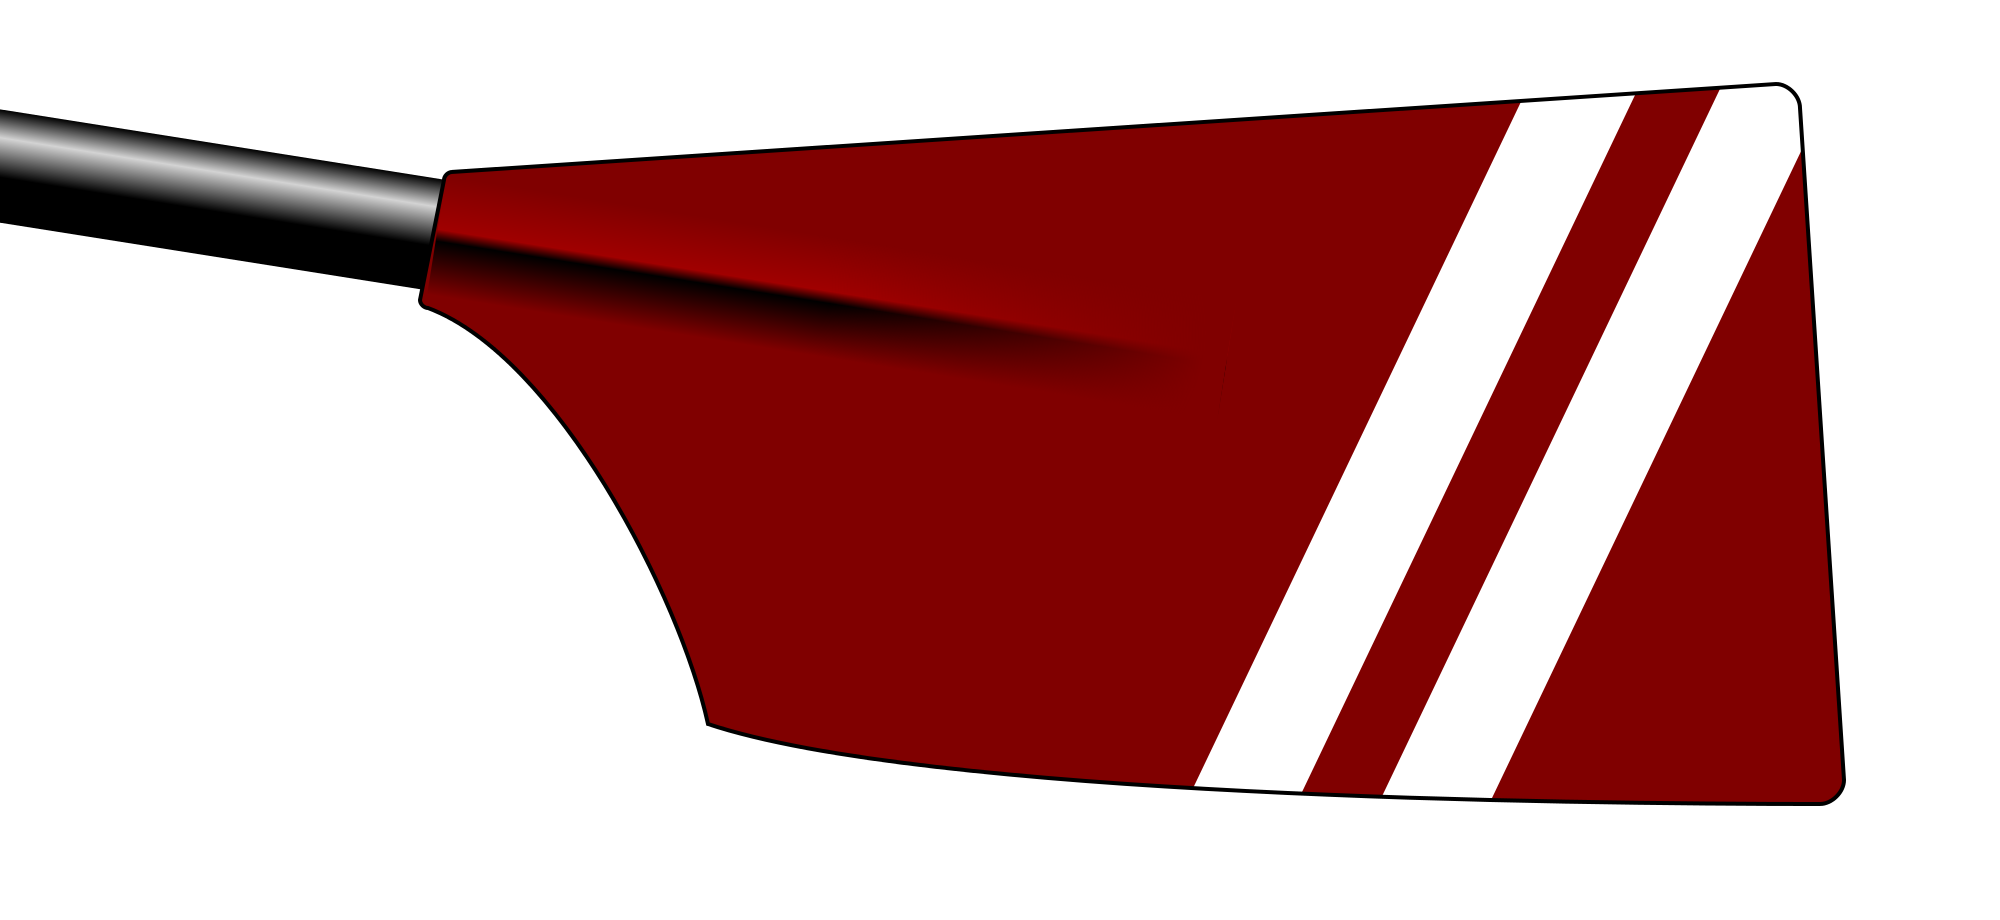 clipart transparent library Datei colgate university club. Boat svg rowing